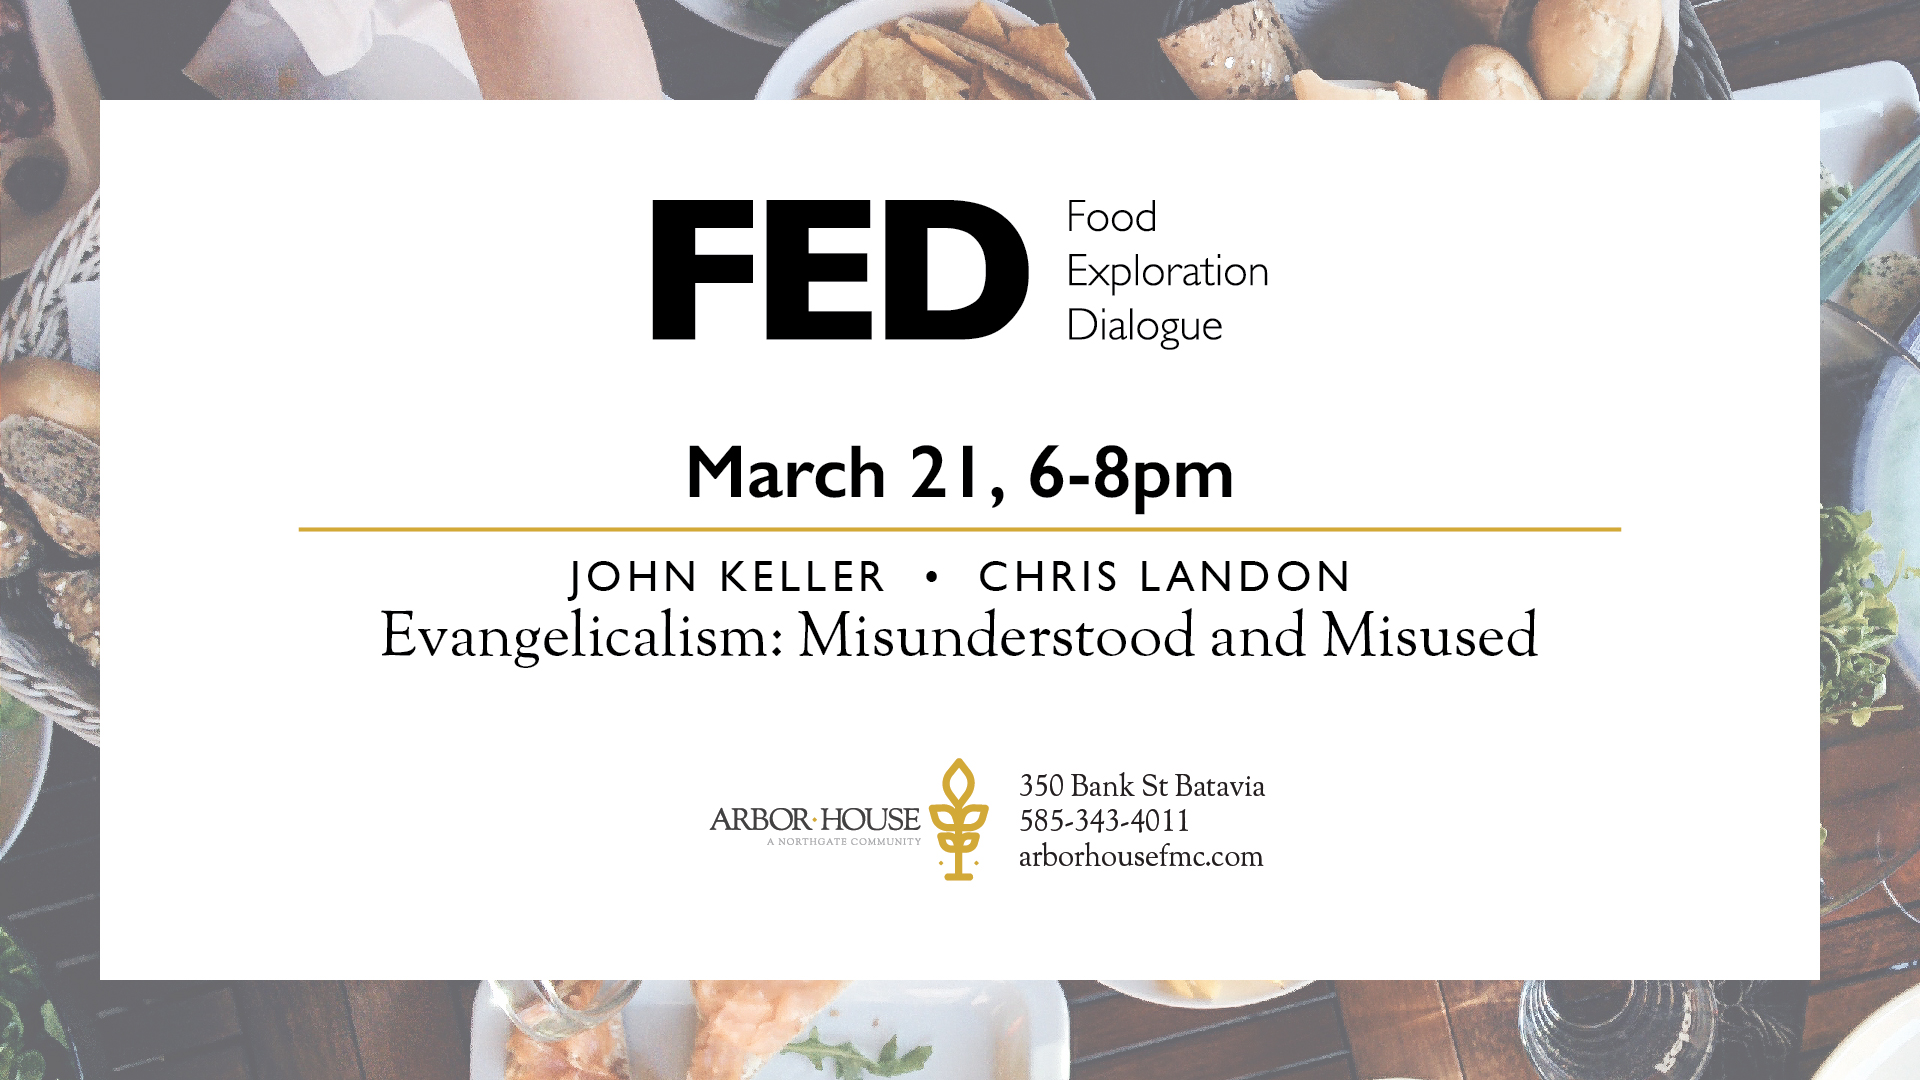 FED Talk March 21 at Arbor House Free Methodist Church